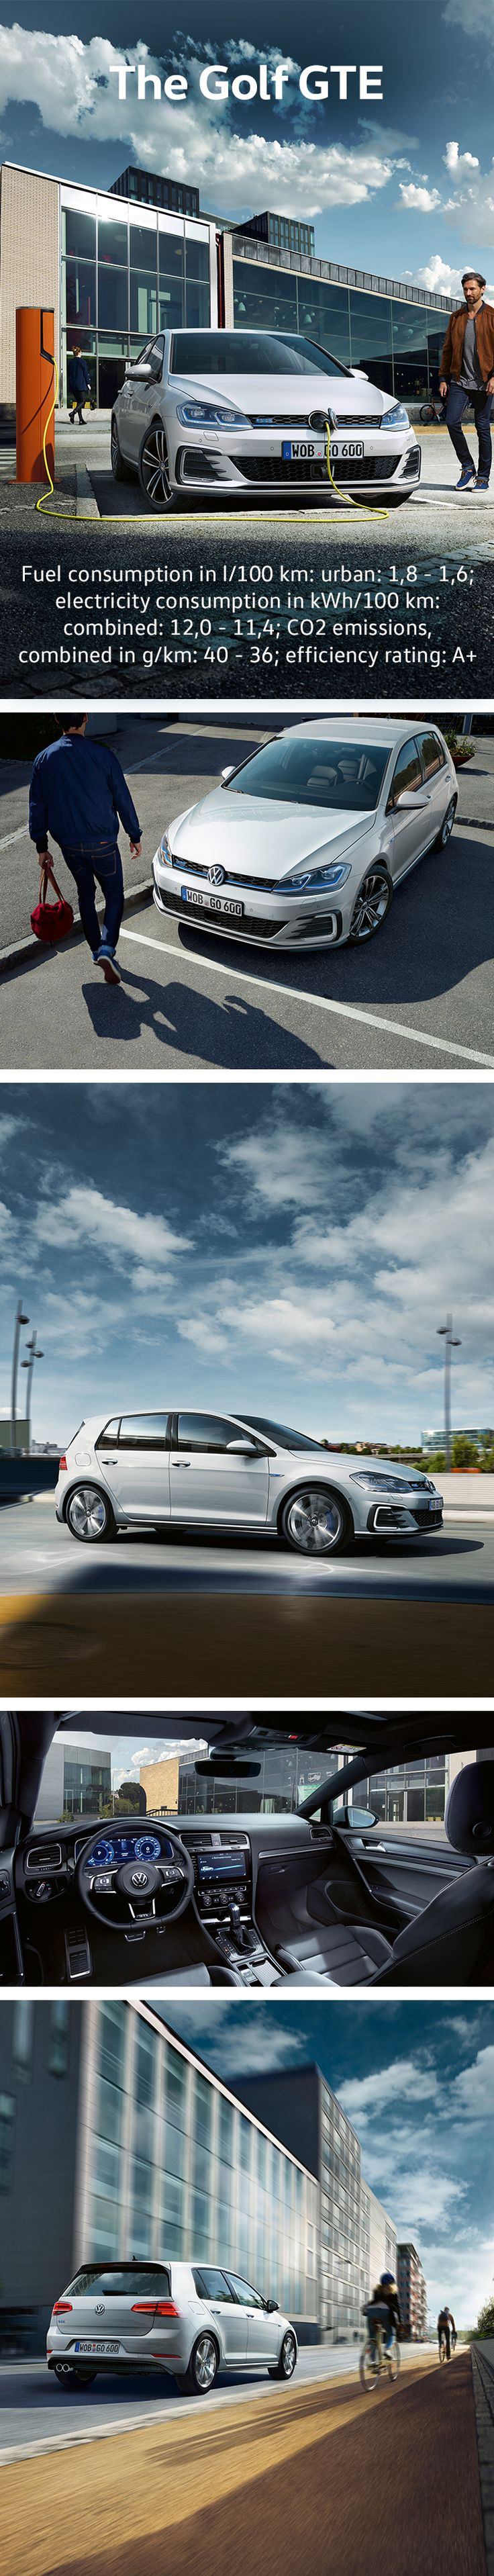 The new Golf GTE is agile and extremely elegant. The sleek front of this Volkswagen plug-in hybrid model with its closed radiator grille and blue trim strip is synonymous with agility and aerodynamics. It's sporty tail end further emphasizes its dynamic character.